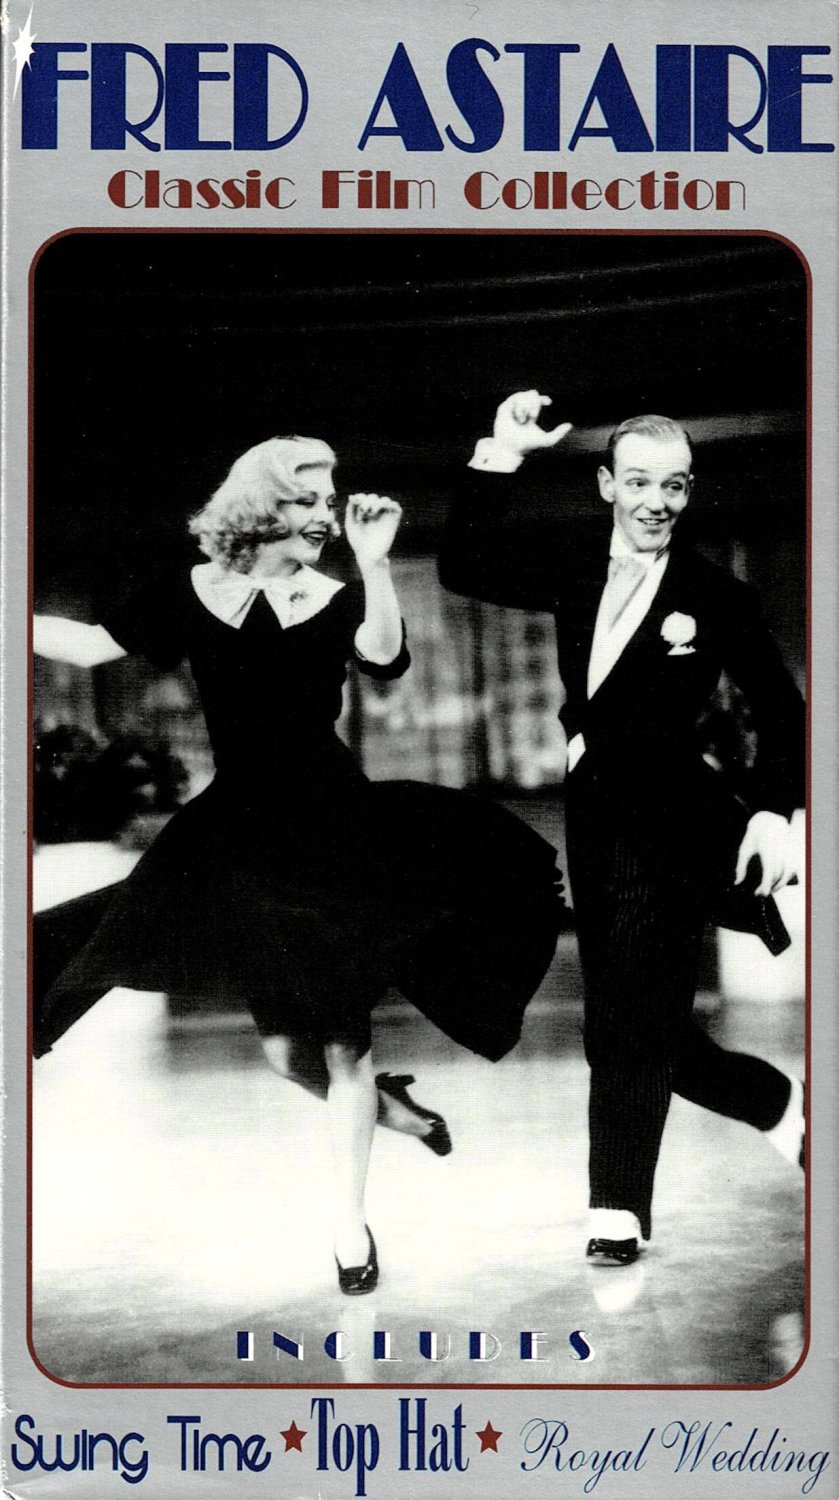 Fred Astaire Classic Film Collection Swing Time Top Hat Royal Wedding Movies 5 Hours VHS Video